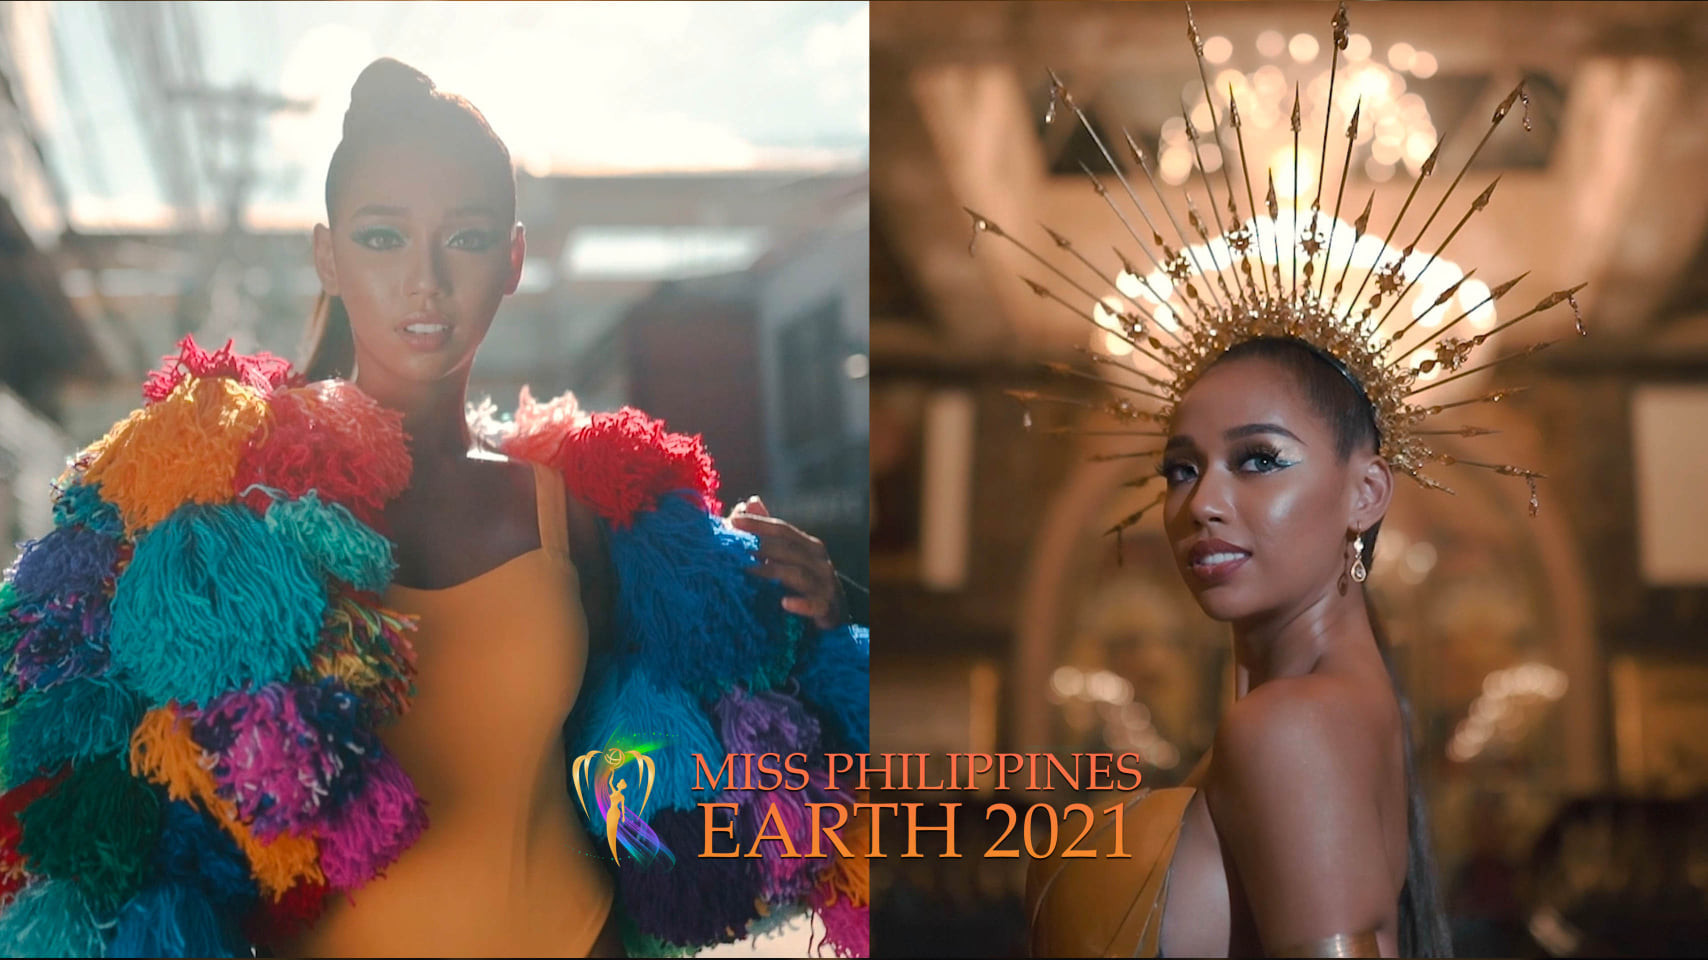 candidatas a miss earth philippines 2021. final: 8 agosto. - Página 14 AxaKCl